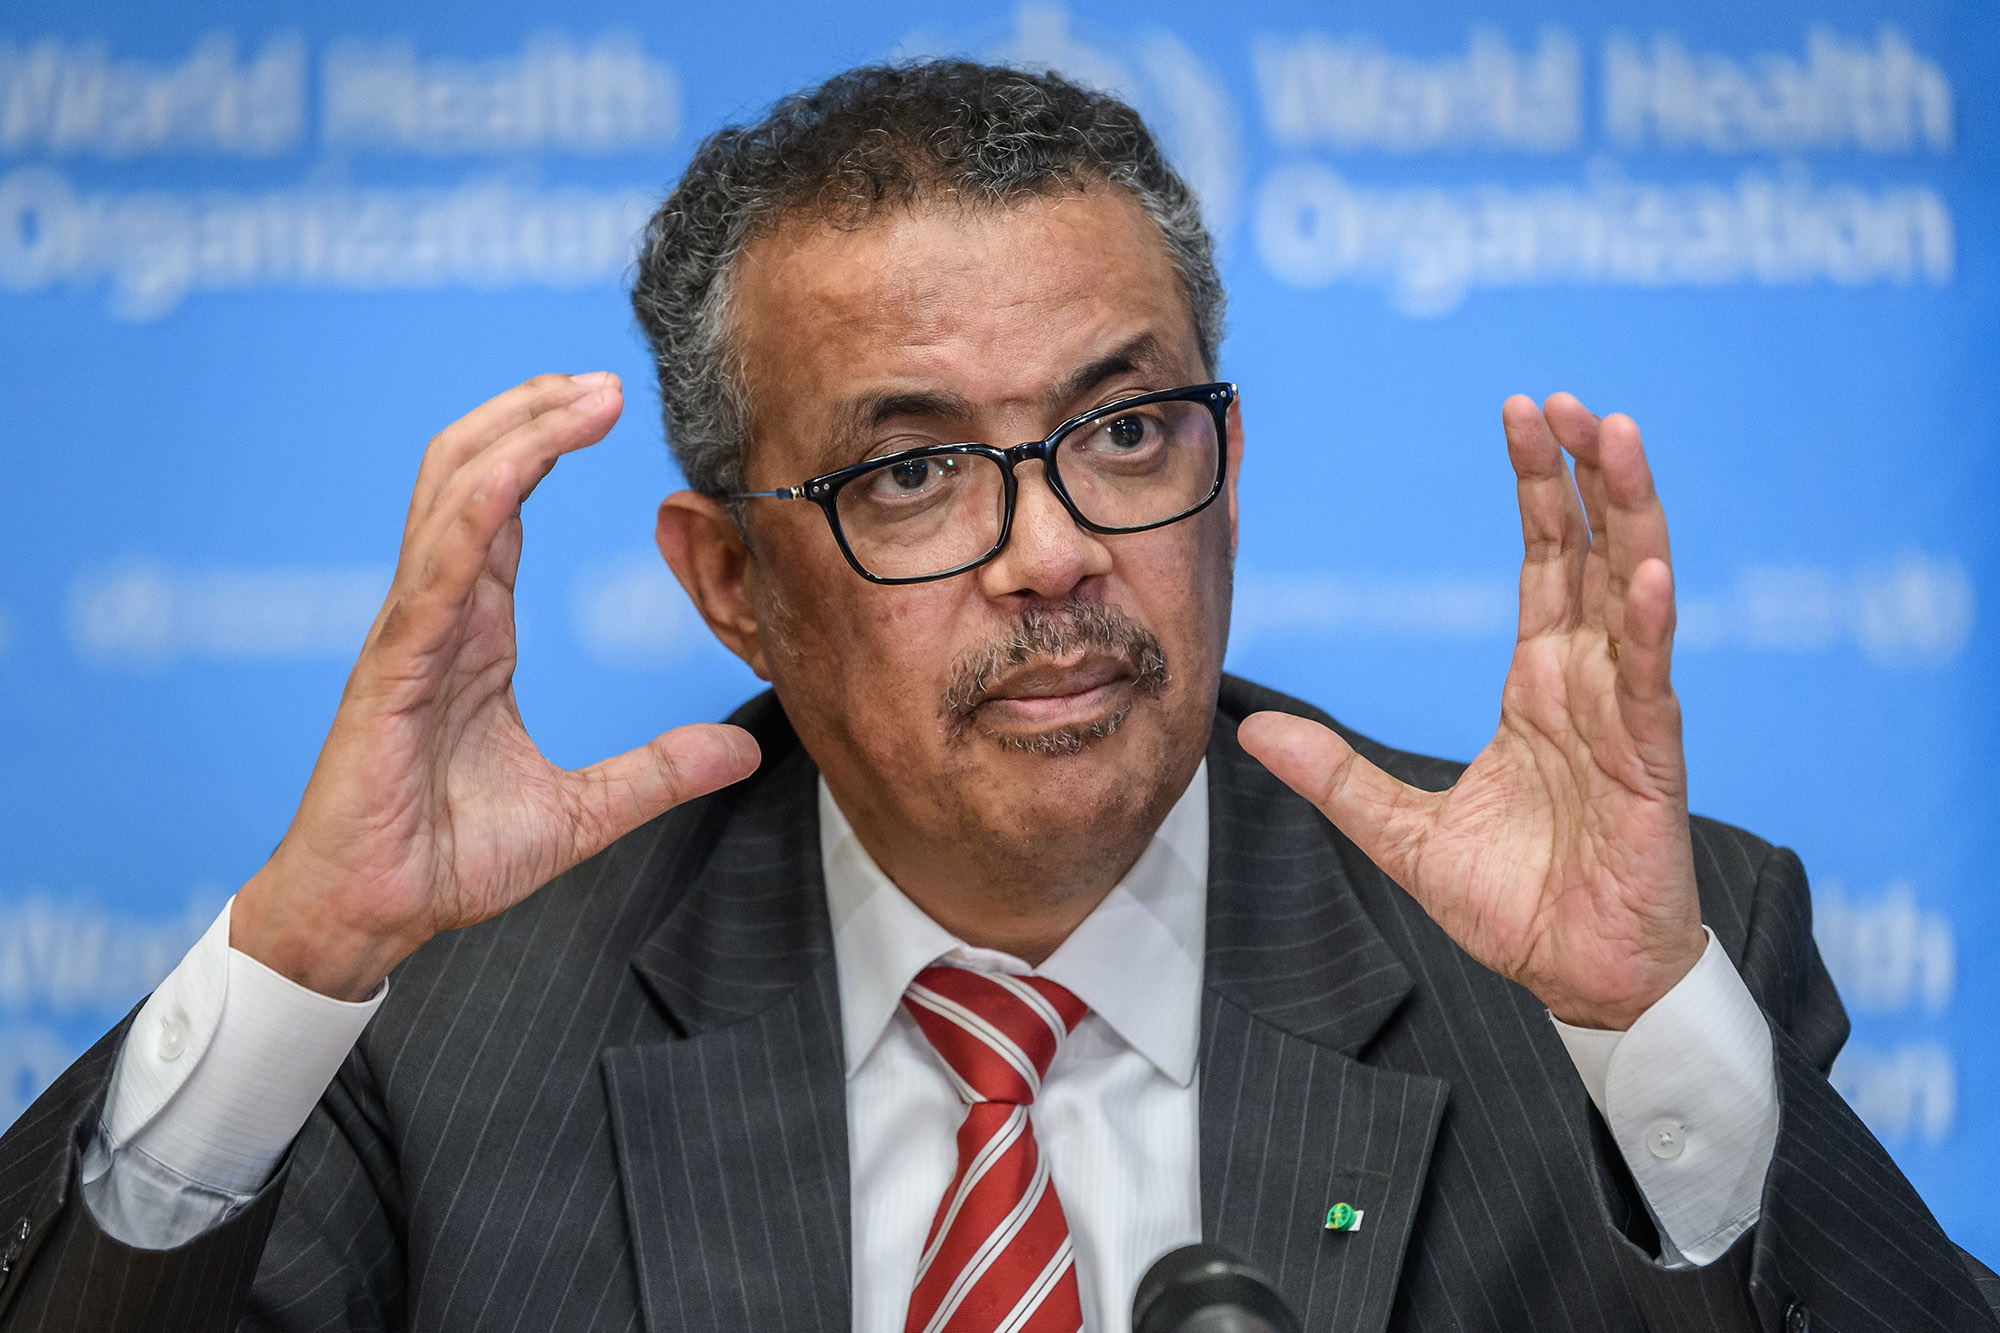 World Health Organization Director-General Tedros Adhanom Ghebreyesus talks during a daily press briefing on COVID-19 virus at the WHO headquarters in Geneva, Switzerland, on March 11.